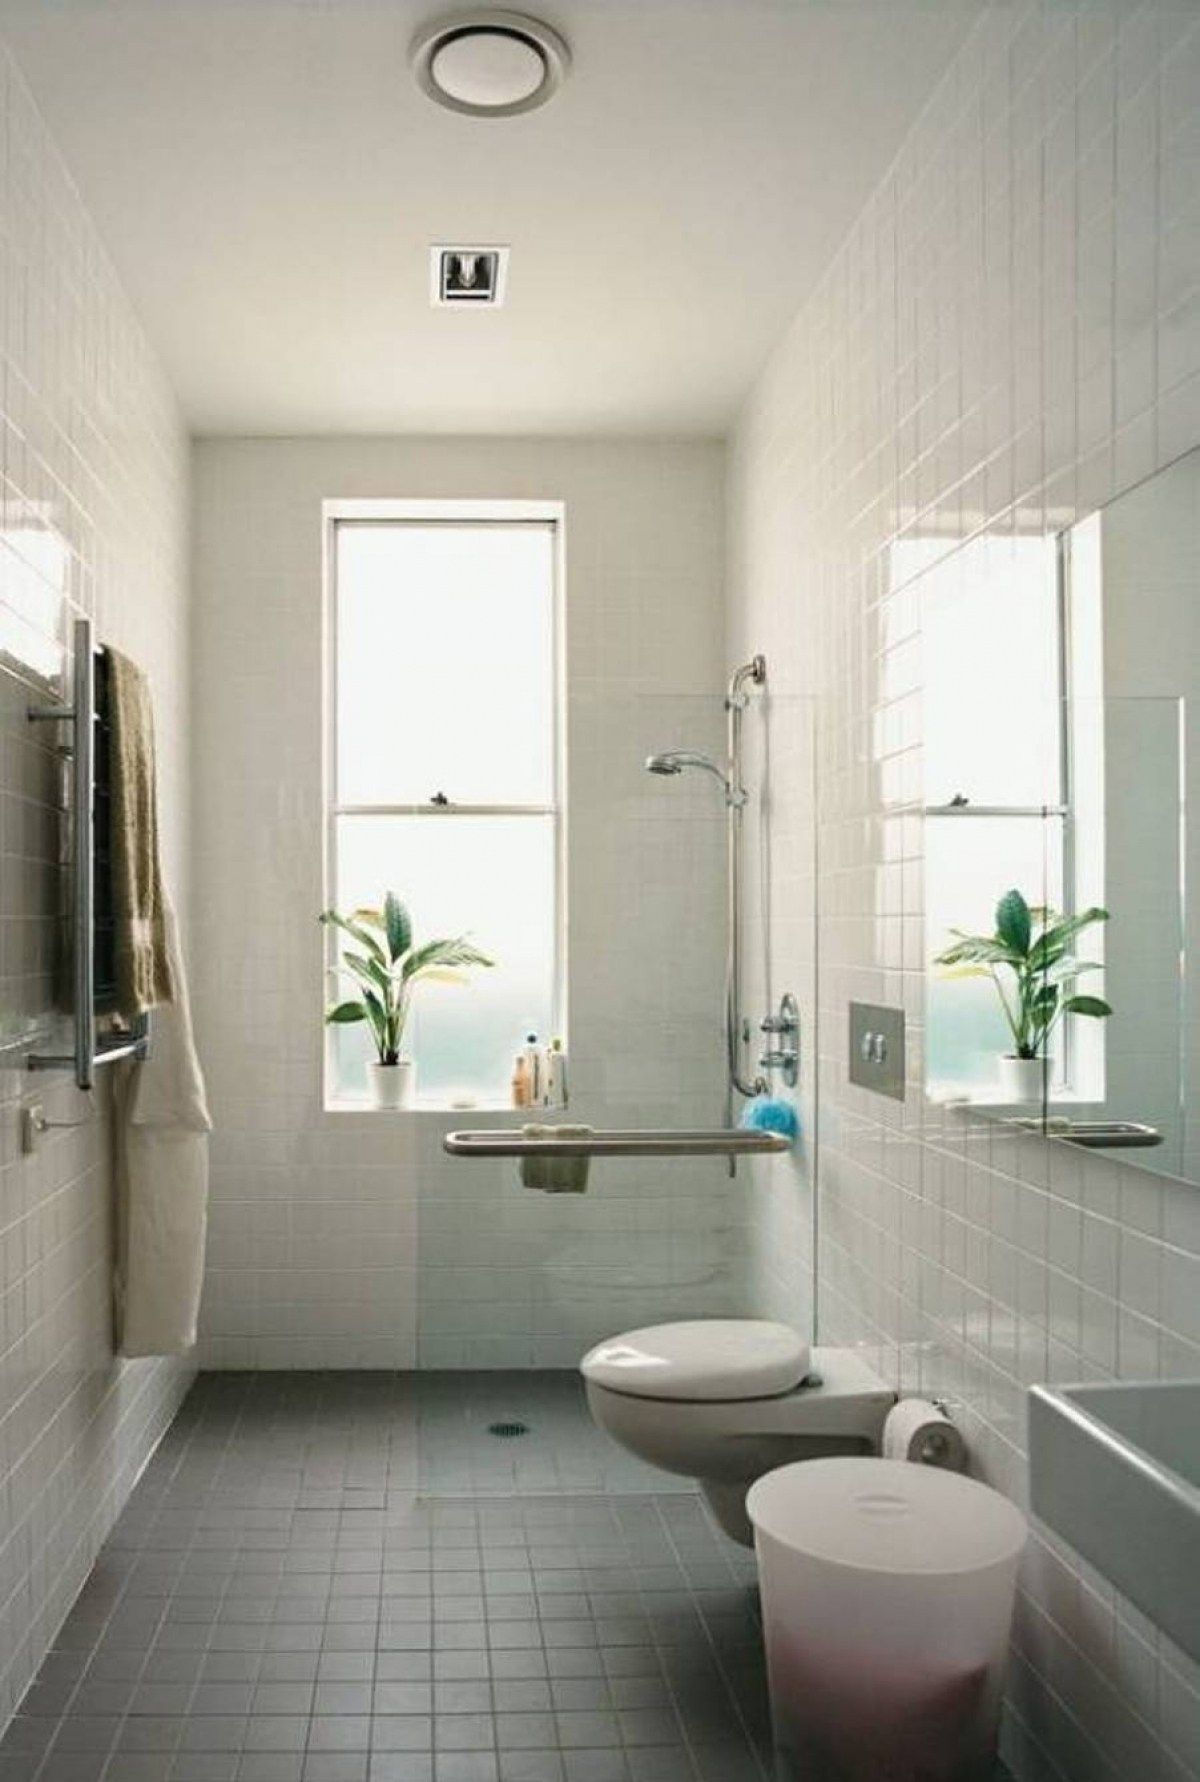 Bathroom small narrow bathroom ideas tub shower popular narrow bathroom ideas tub narrow Small bathroom ideas with pictures